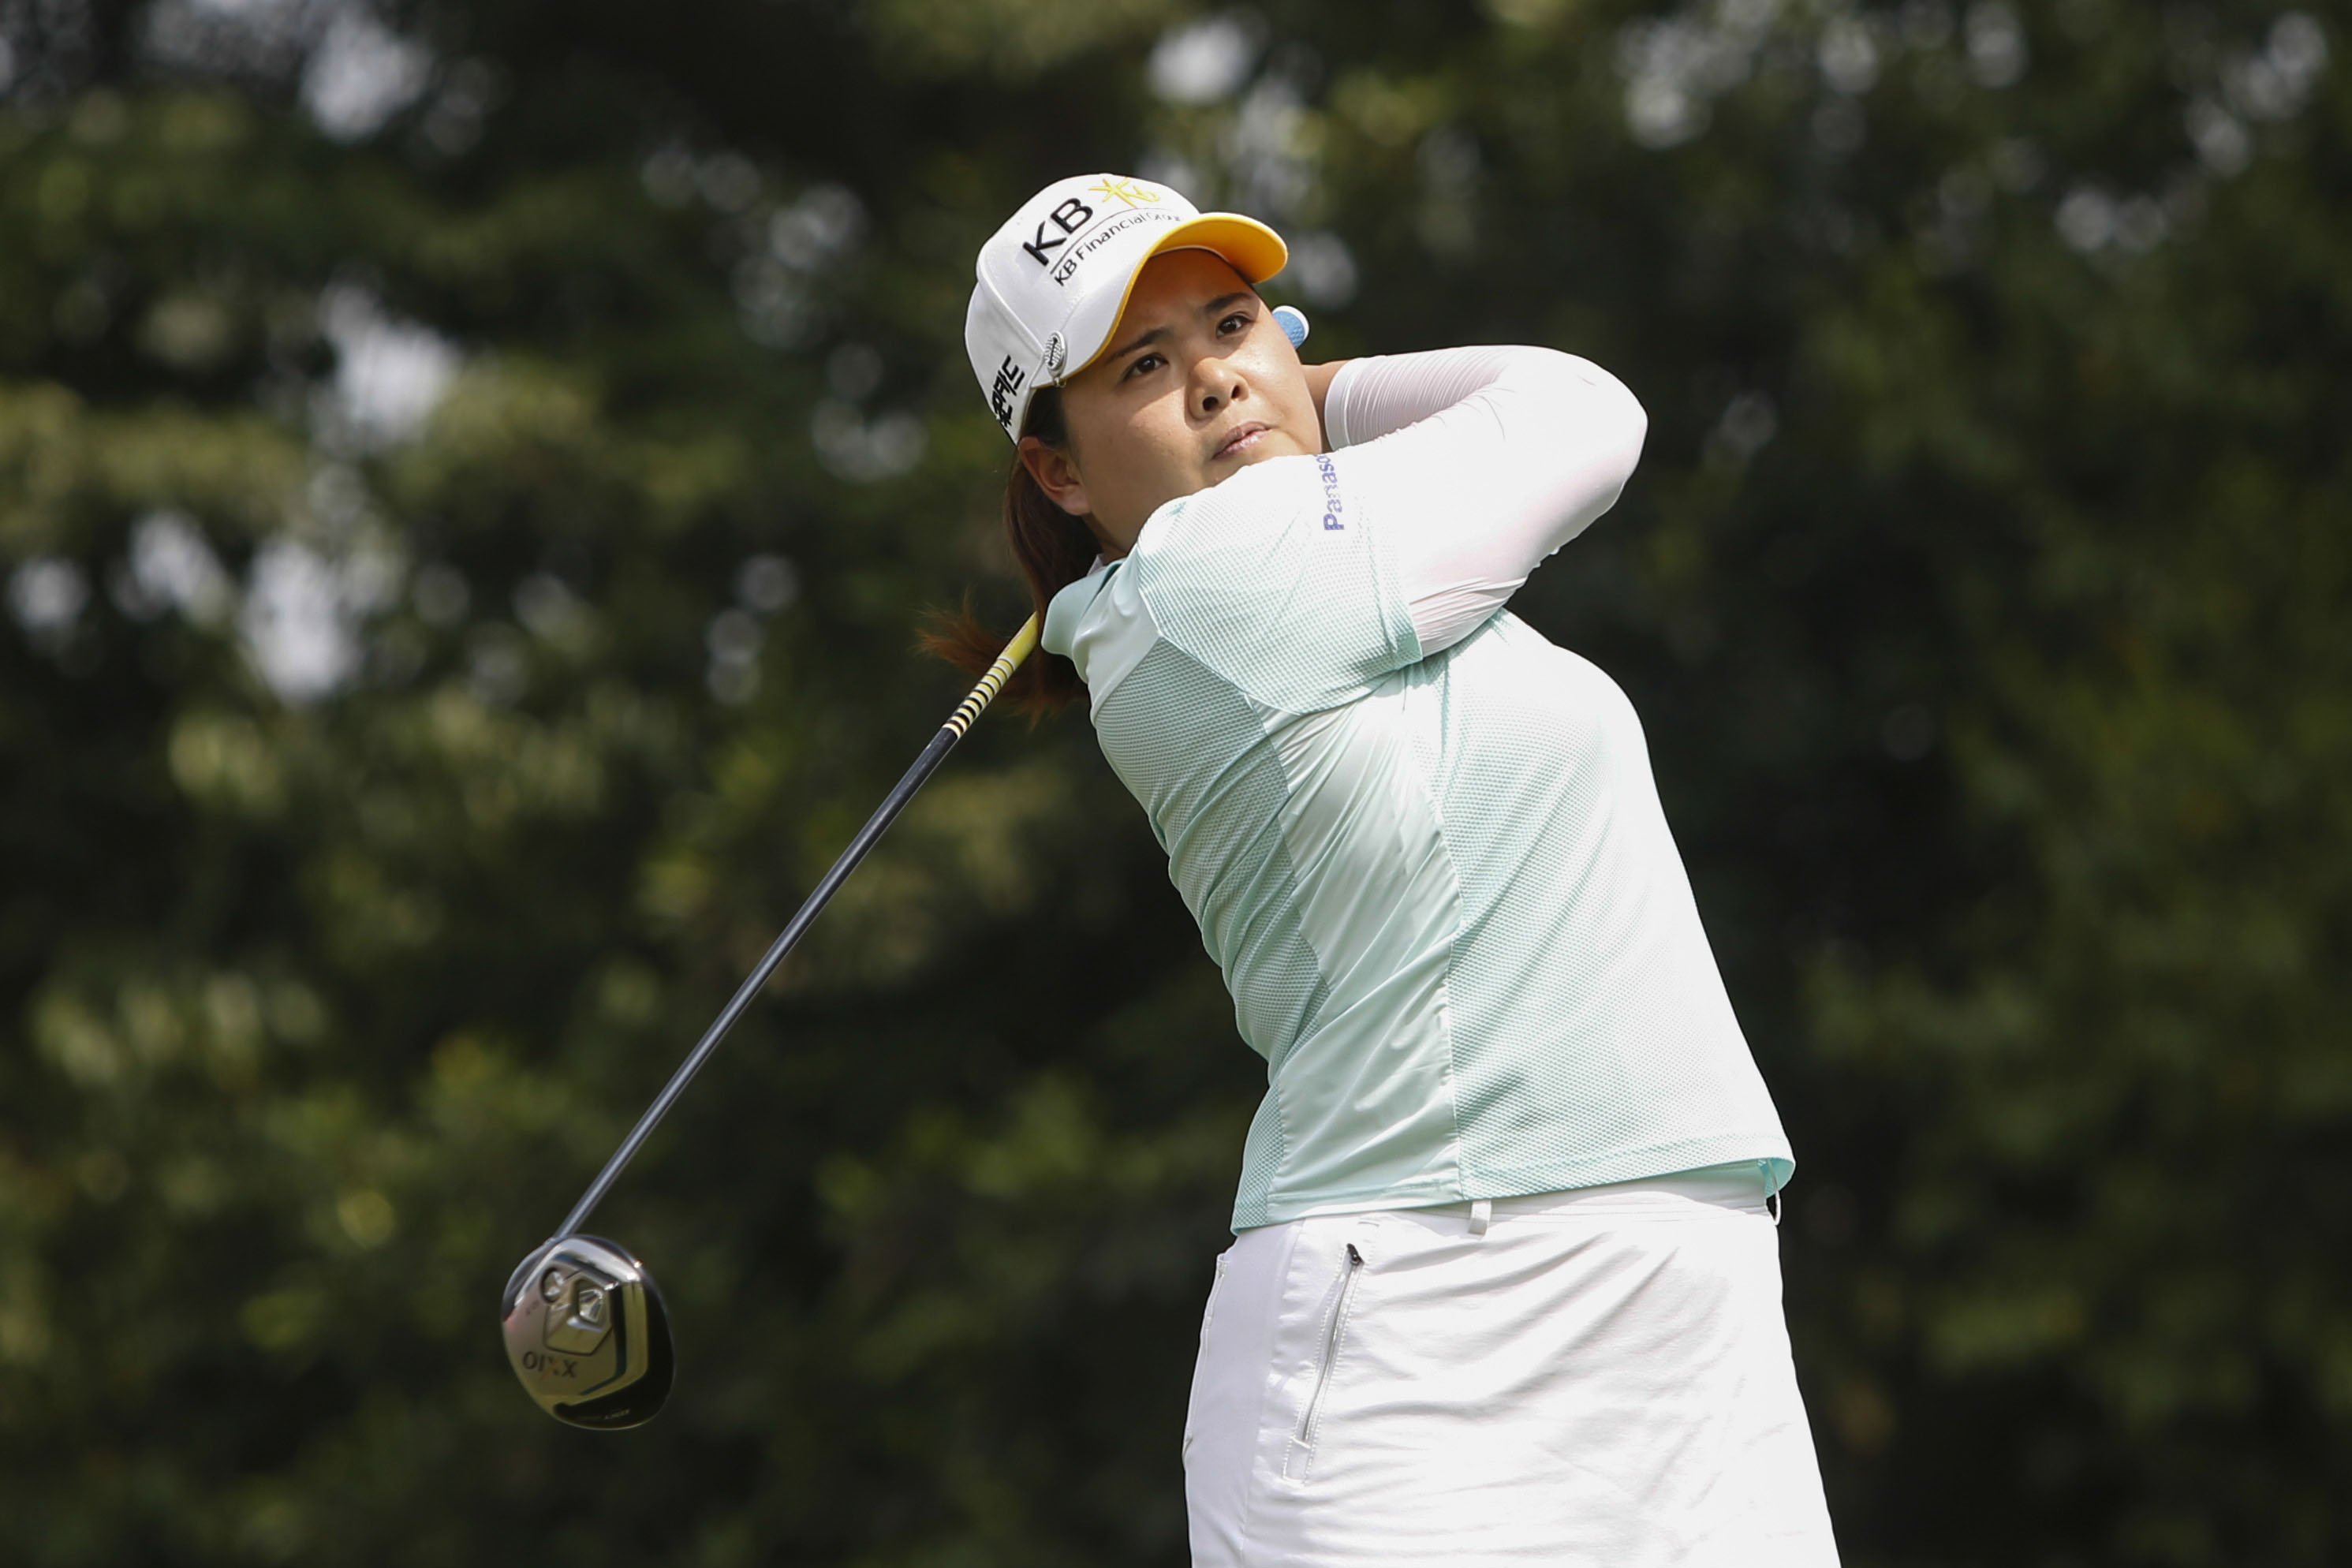 Inbee Park has a three-shot lead after the third round.